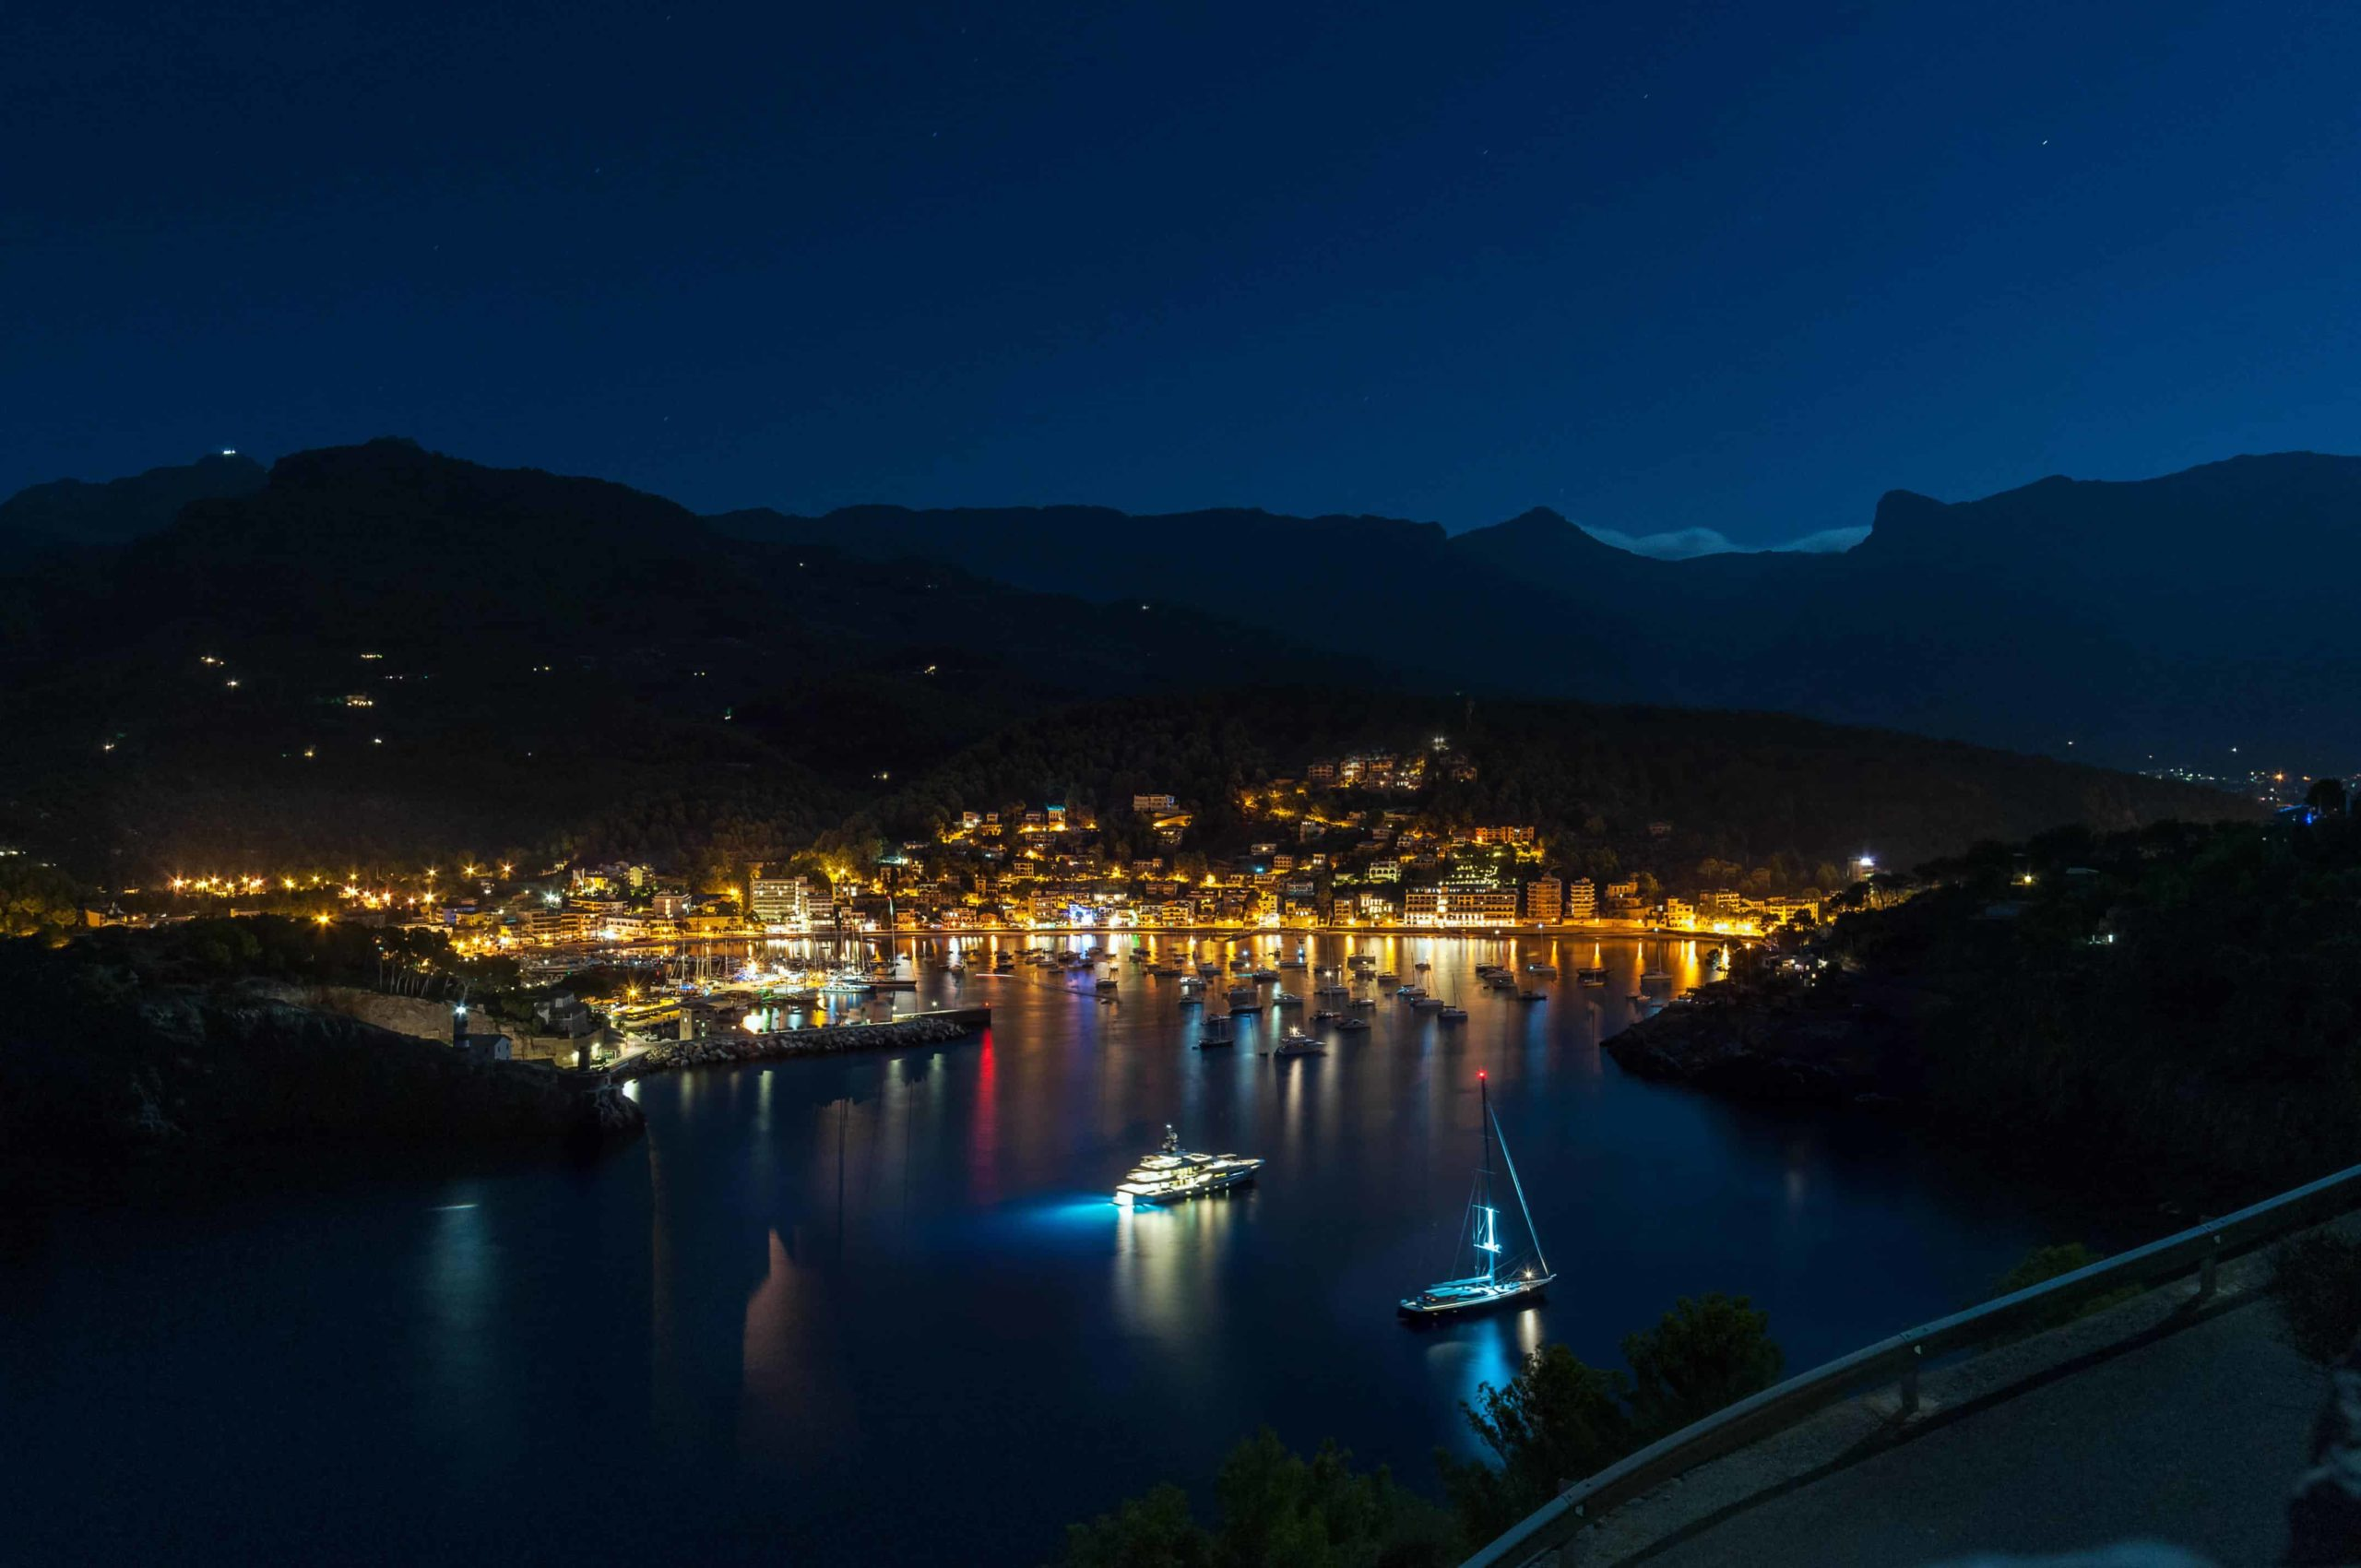 Night photo of lively harbour